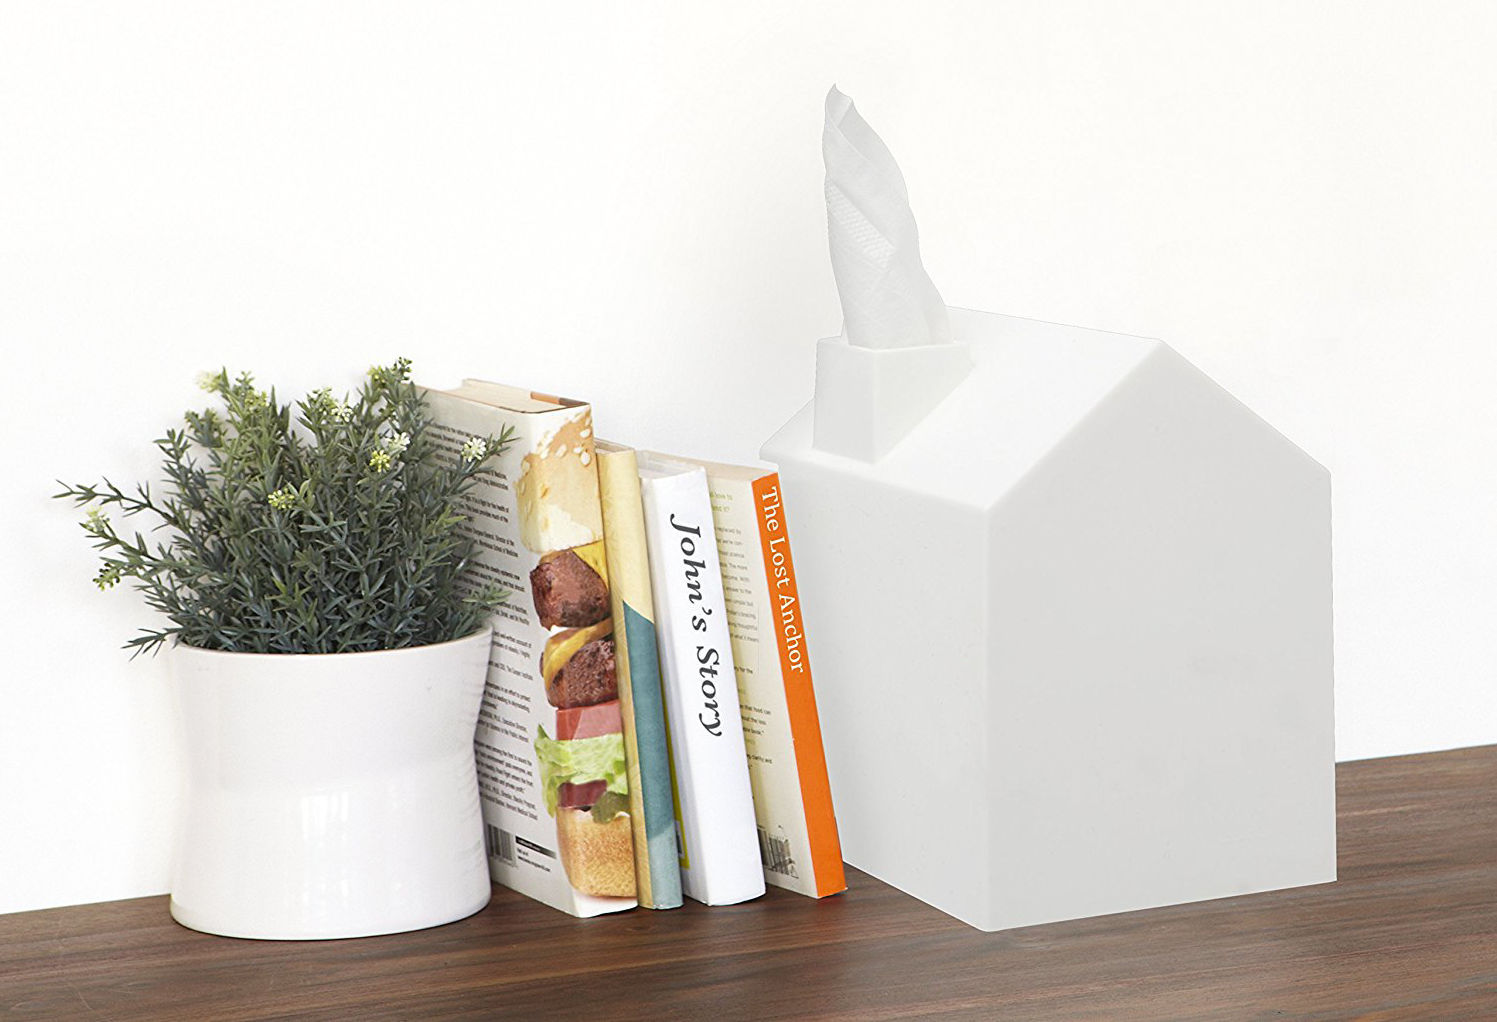 Tissue box on table next to books